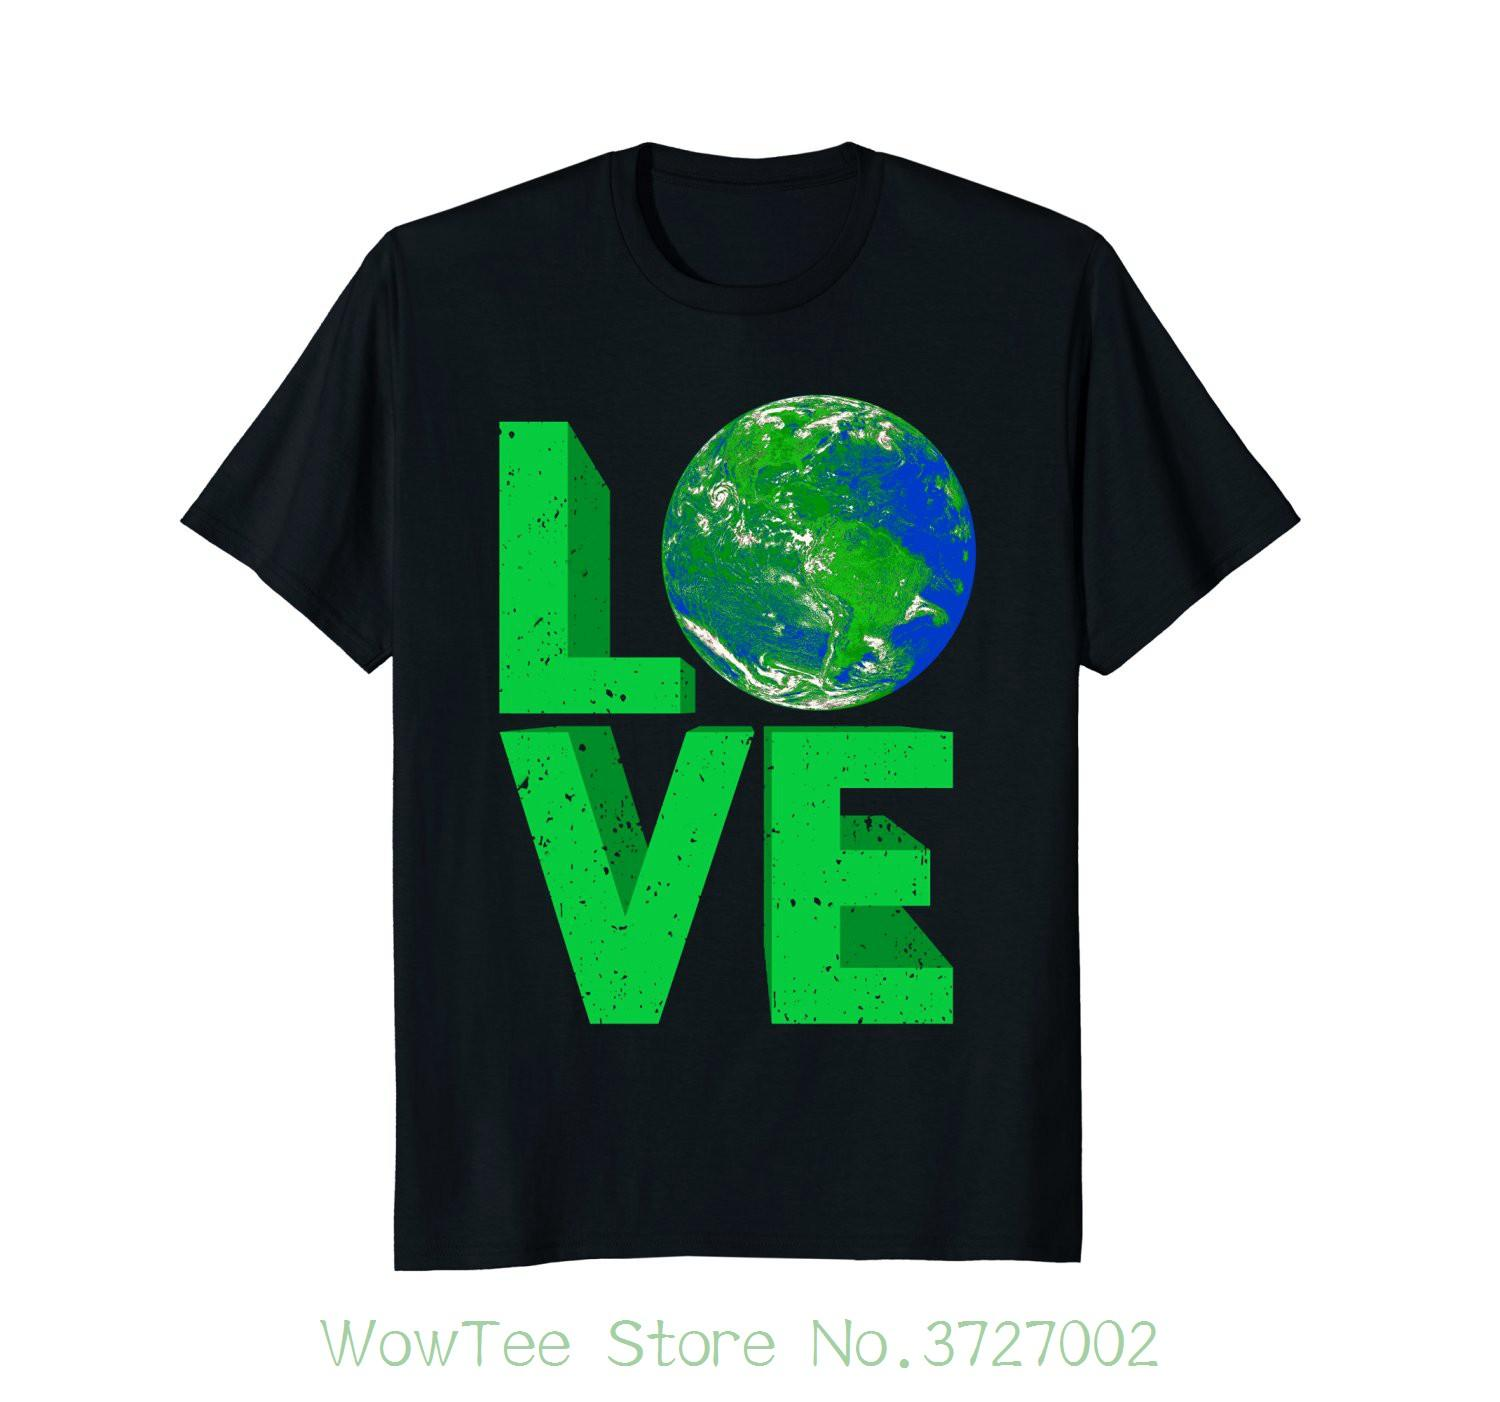 b00d1a5afbe Go Green Love Planet Earth - Earth Day Tshirts New Arrival Male Tees Casual  Boy T-shirt Tops Discounts Online with  15.38 Piece on Wowteestore s Store  ...